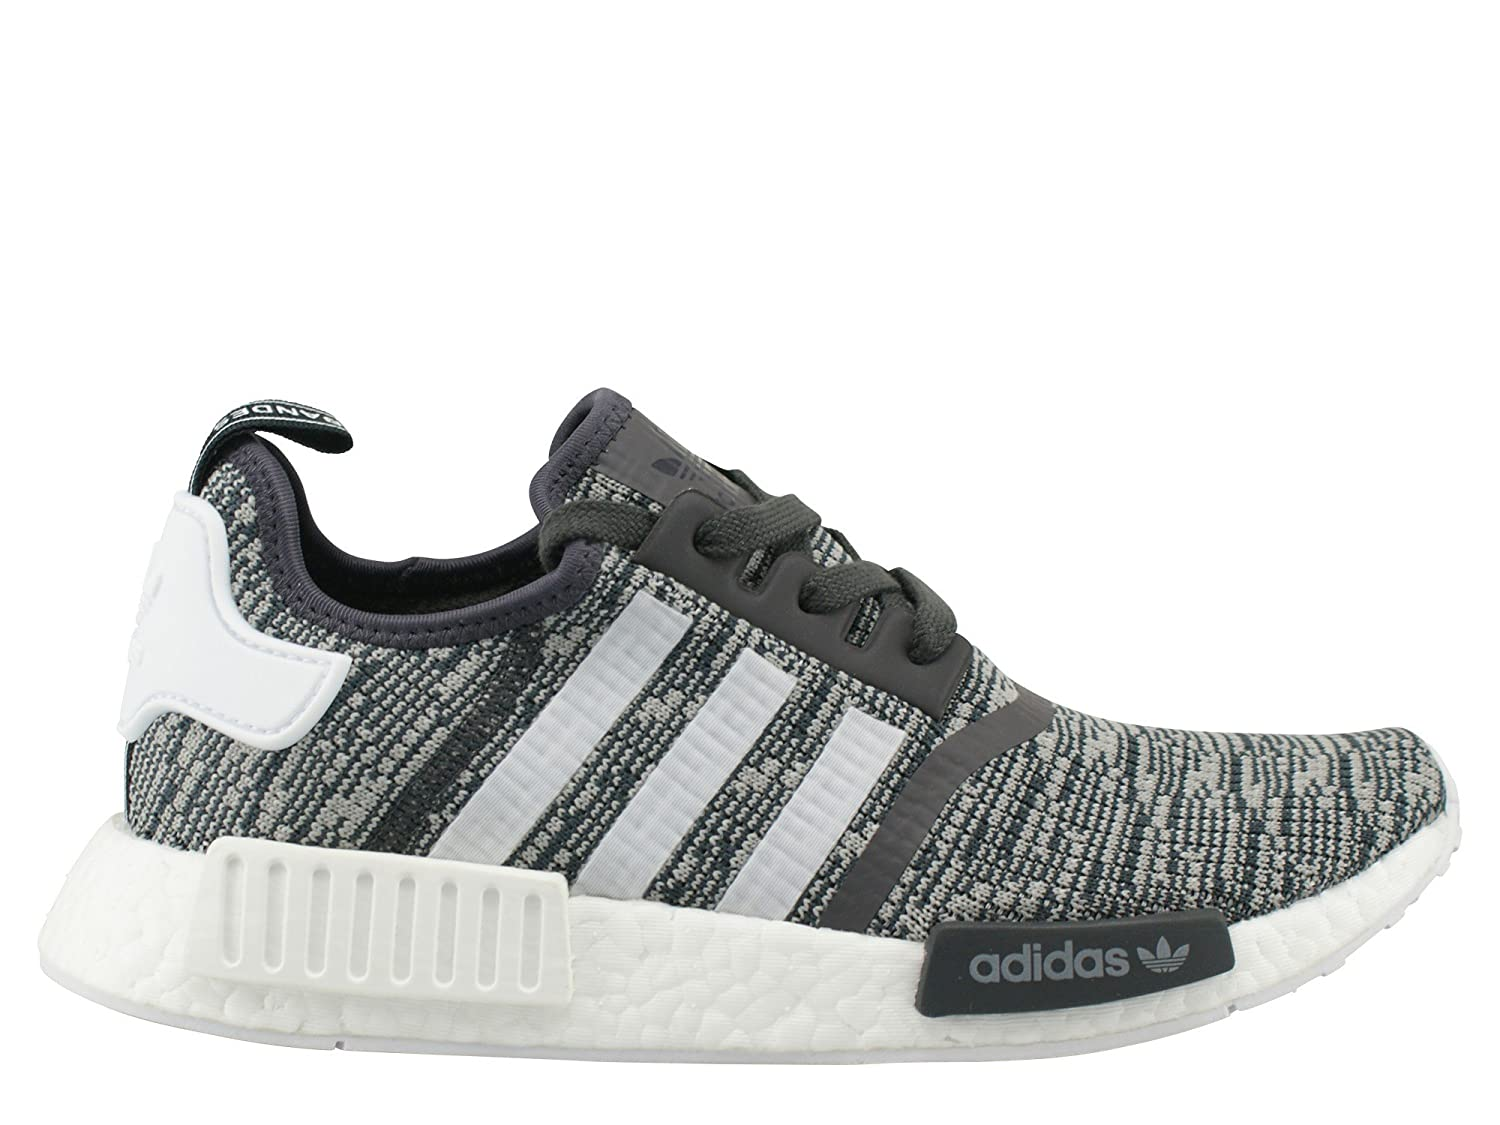 Utility Black Footwear White Medium Grey Heather Solid Grey Adidas Originals Men's Primeknit NMD_R1 Running shoes (Black)